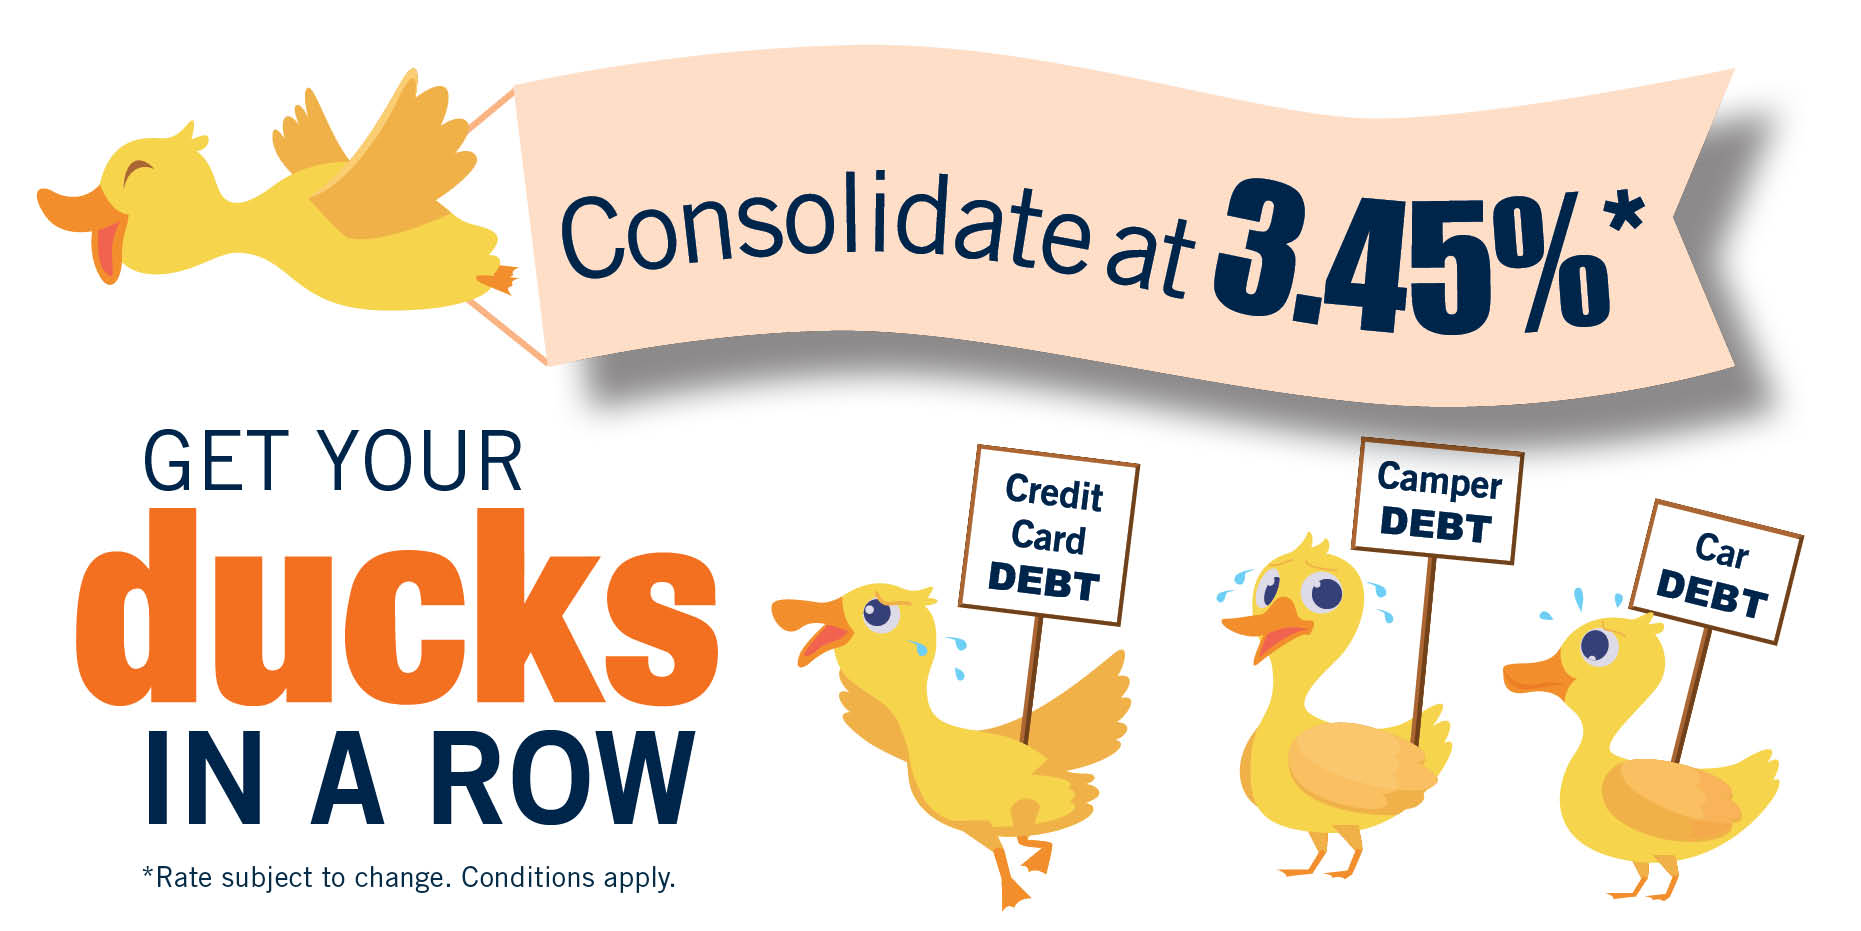 Get your Ducks in a Row with a consolidation loan from Sunrise Credit Union. Rates as low as 3.45%